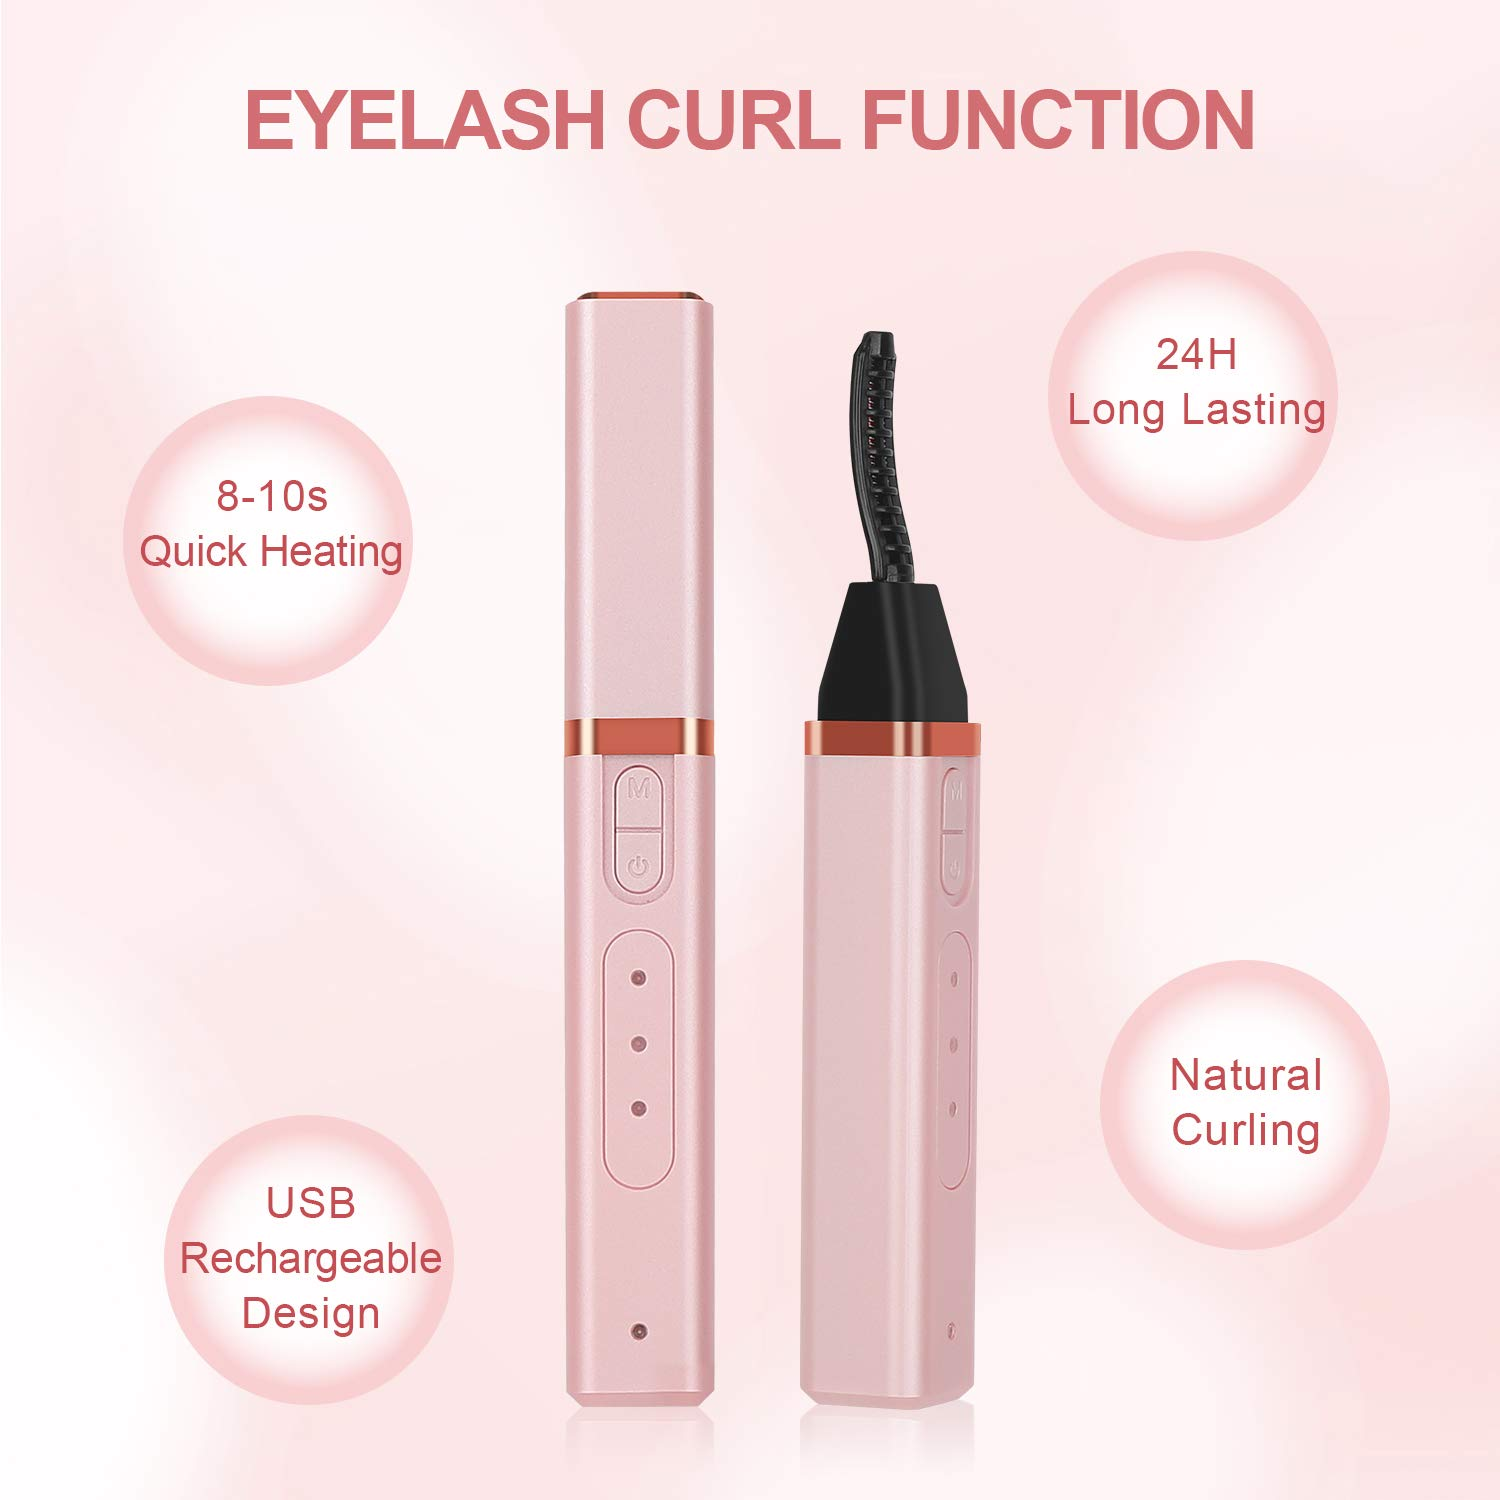 Heated Eyelash Curler, Electric Eyelash Curler 3 Temperature Options USB Rechargeable Portable Mini Natural Eye Lashes Curling Perfect Curl in 8 Seconds by Stepjoy (2020 Upgraded, Rose) : Beauty